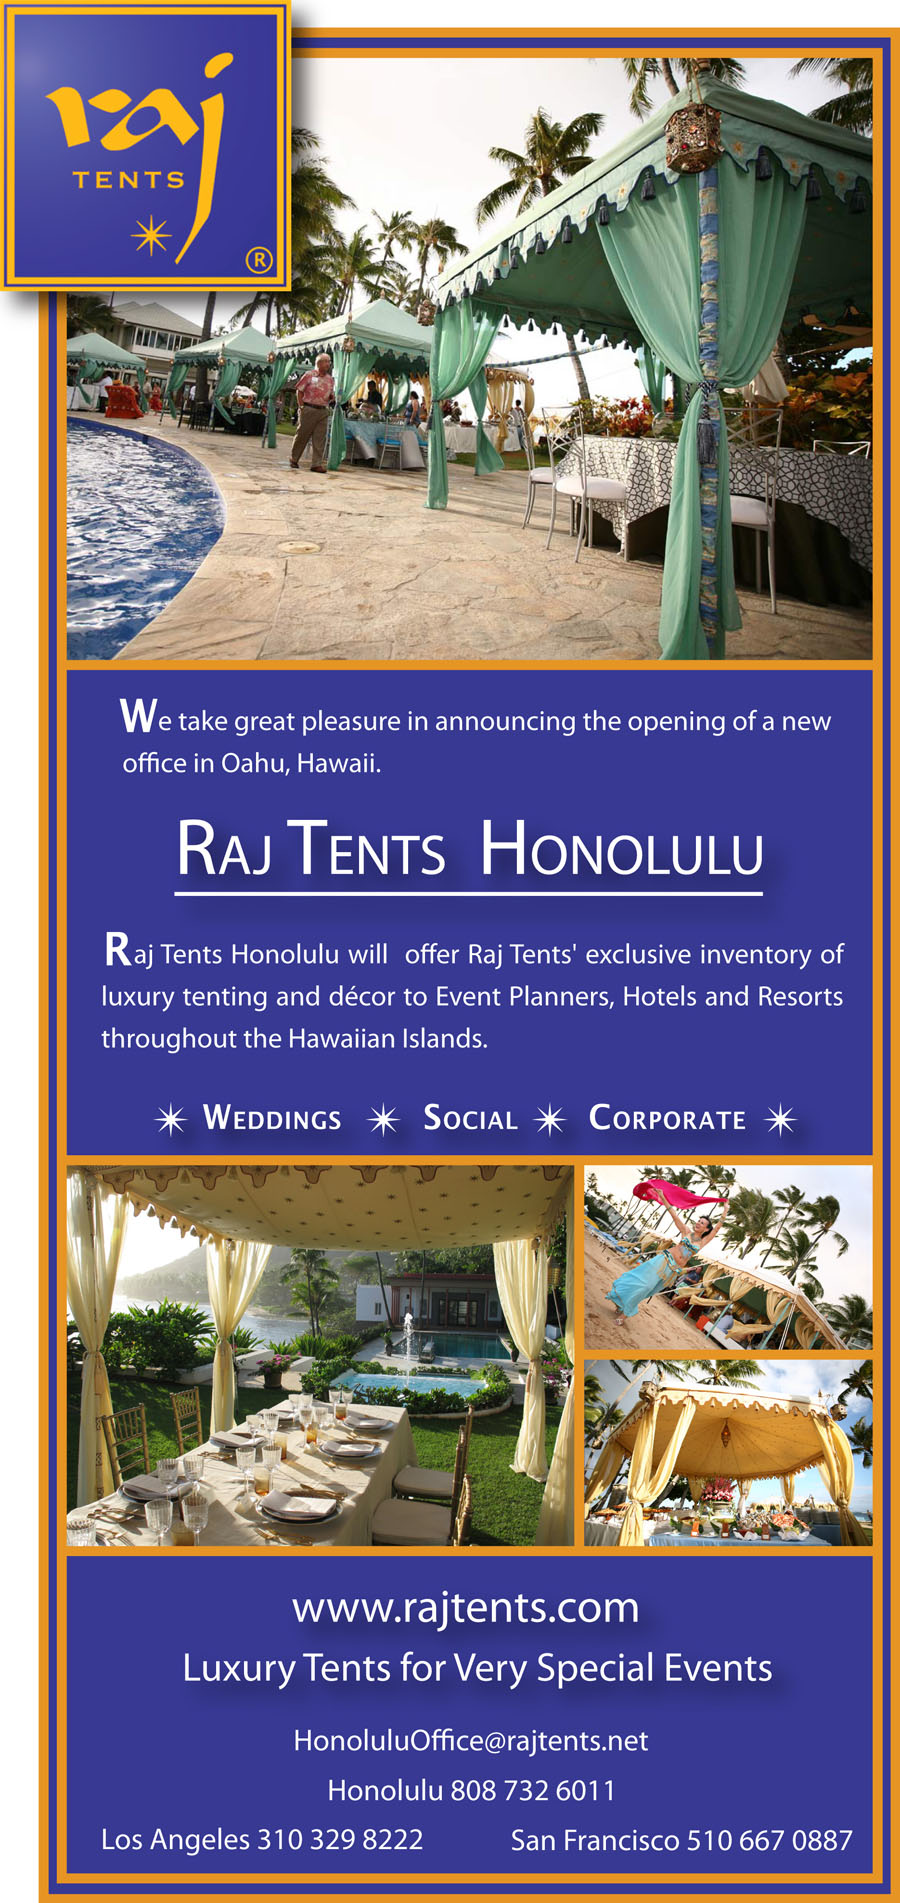 Raj Tents Honolulu office announcement